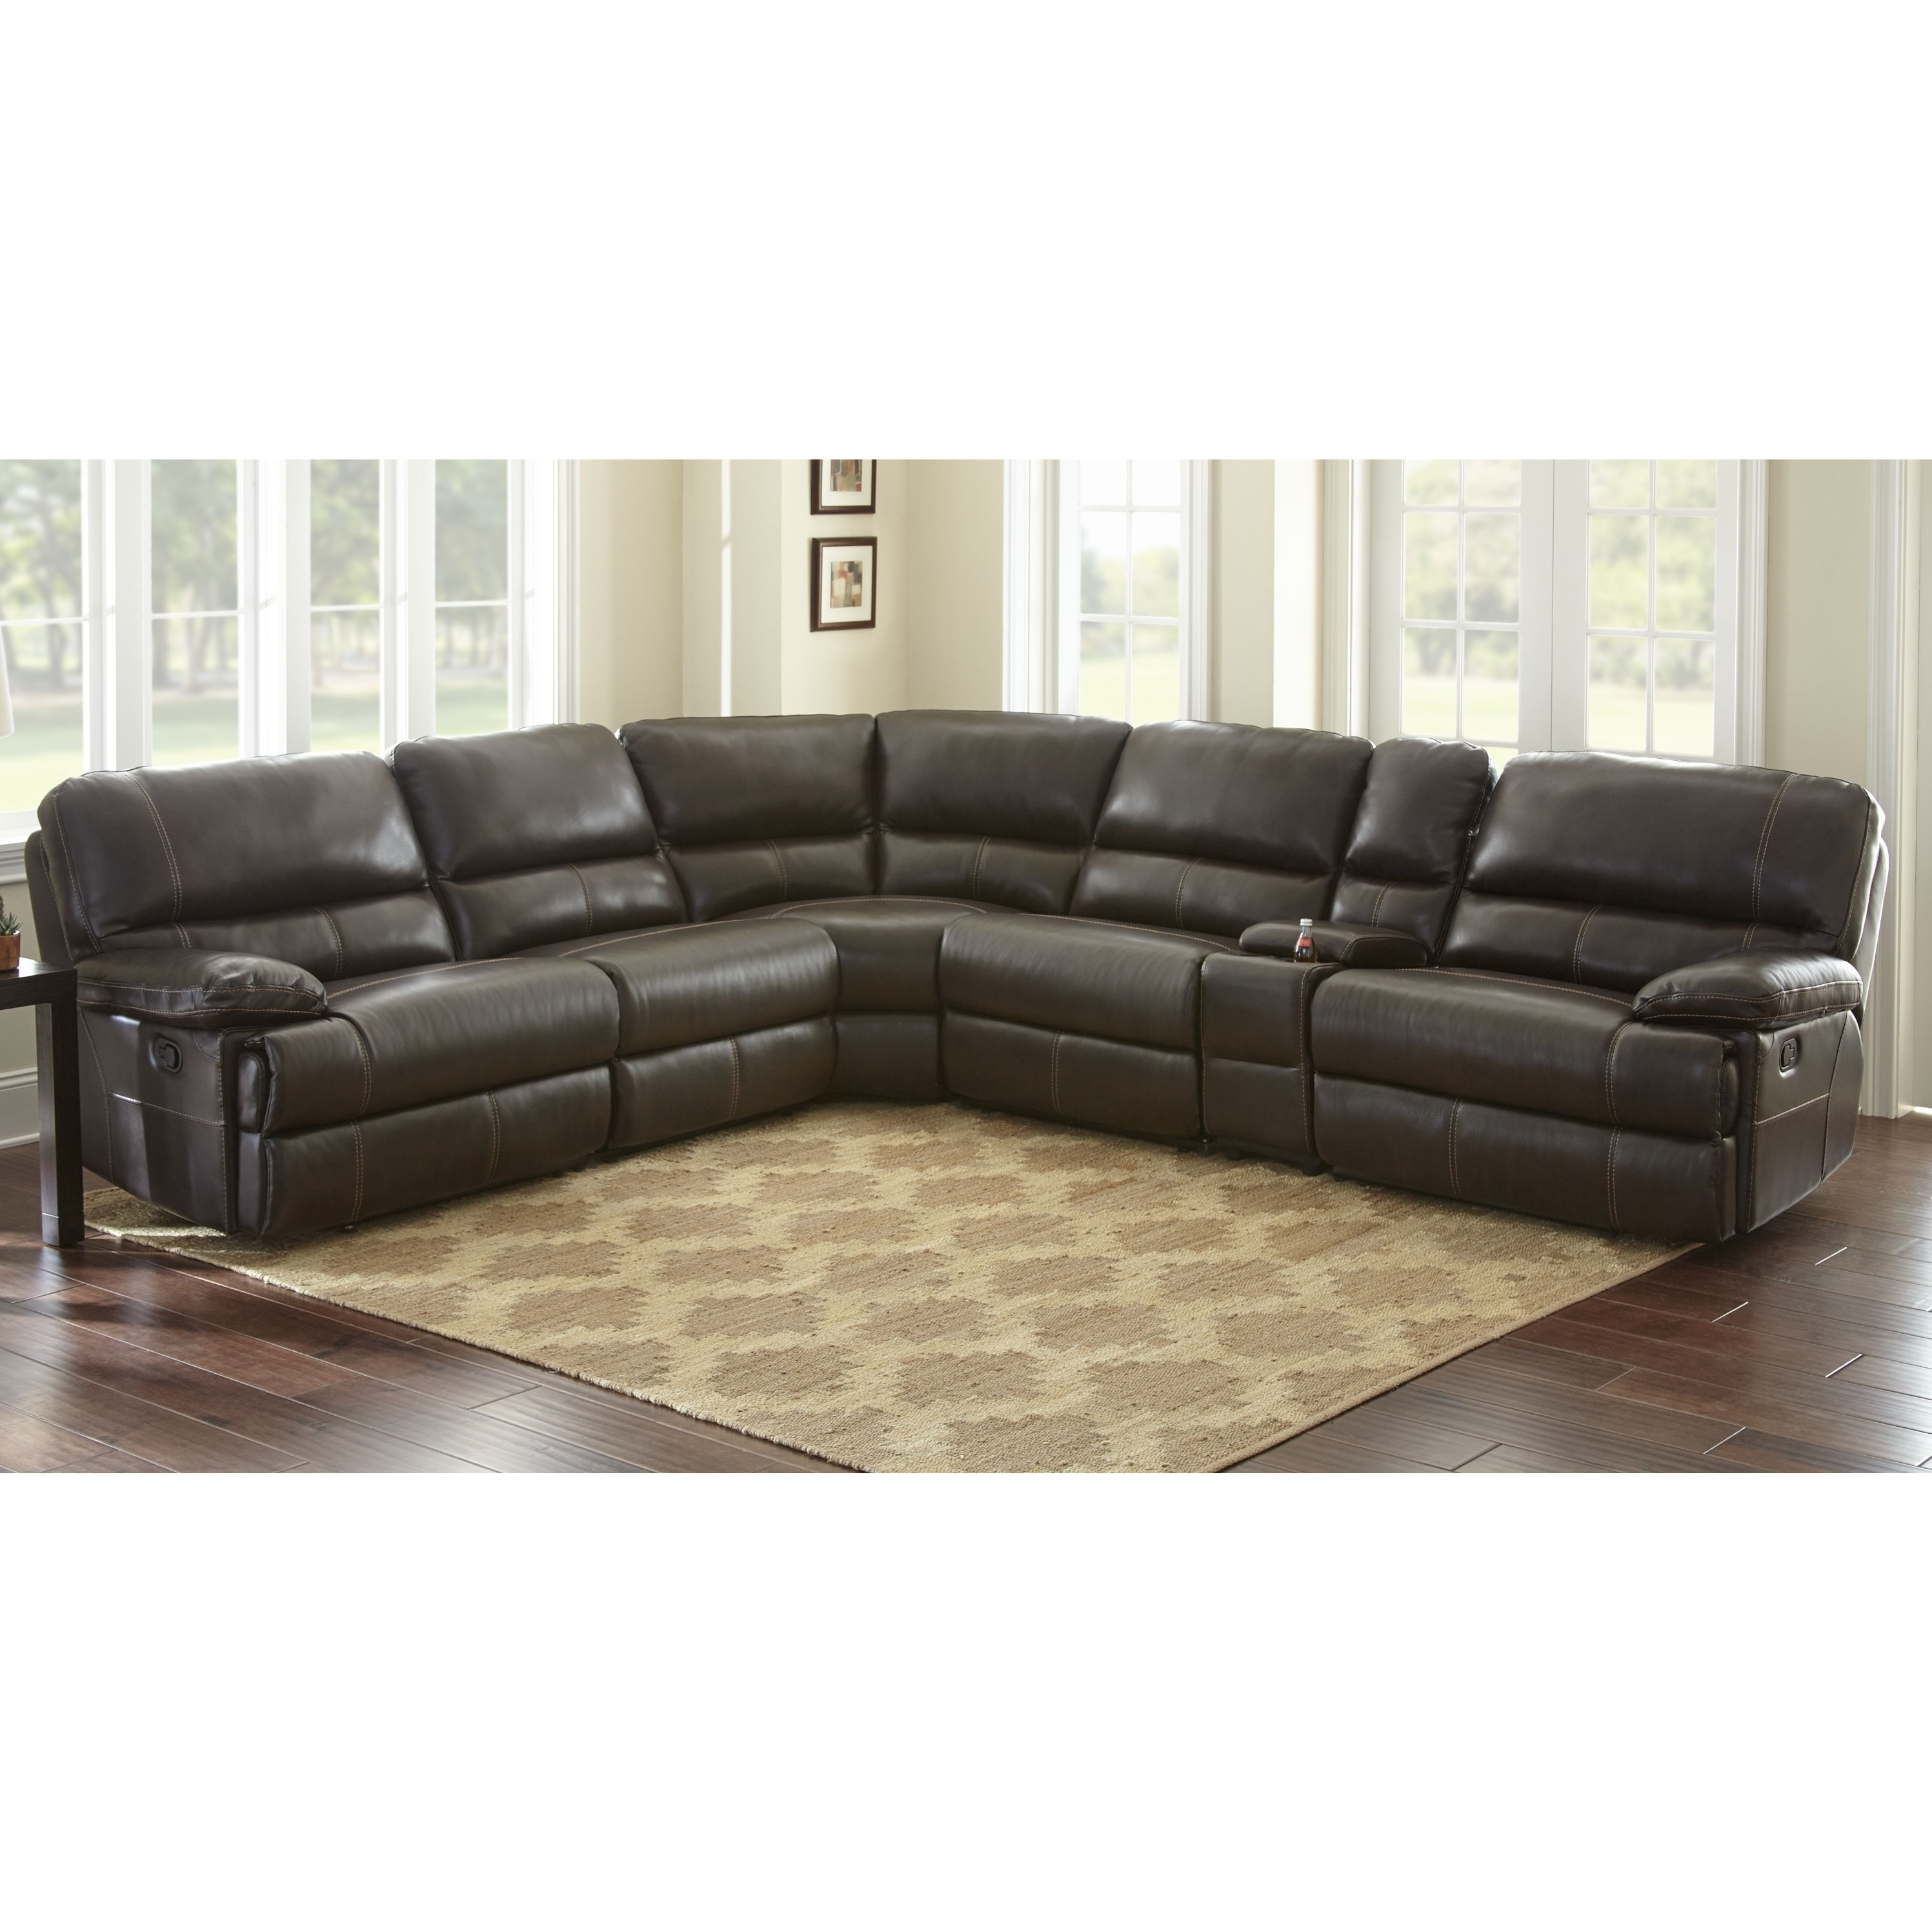 Etonnant Shop Rimini Top Grain Leather Sectional Sofa By Greyson Living   Free  Shipping Today   Overstock.com   14636933